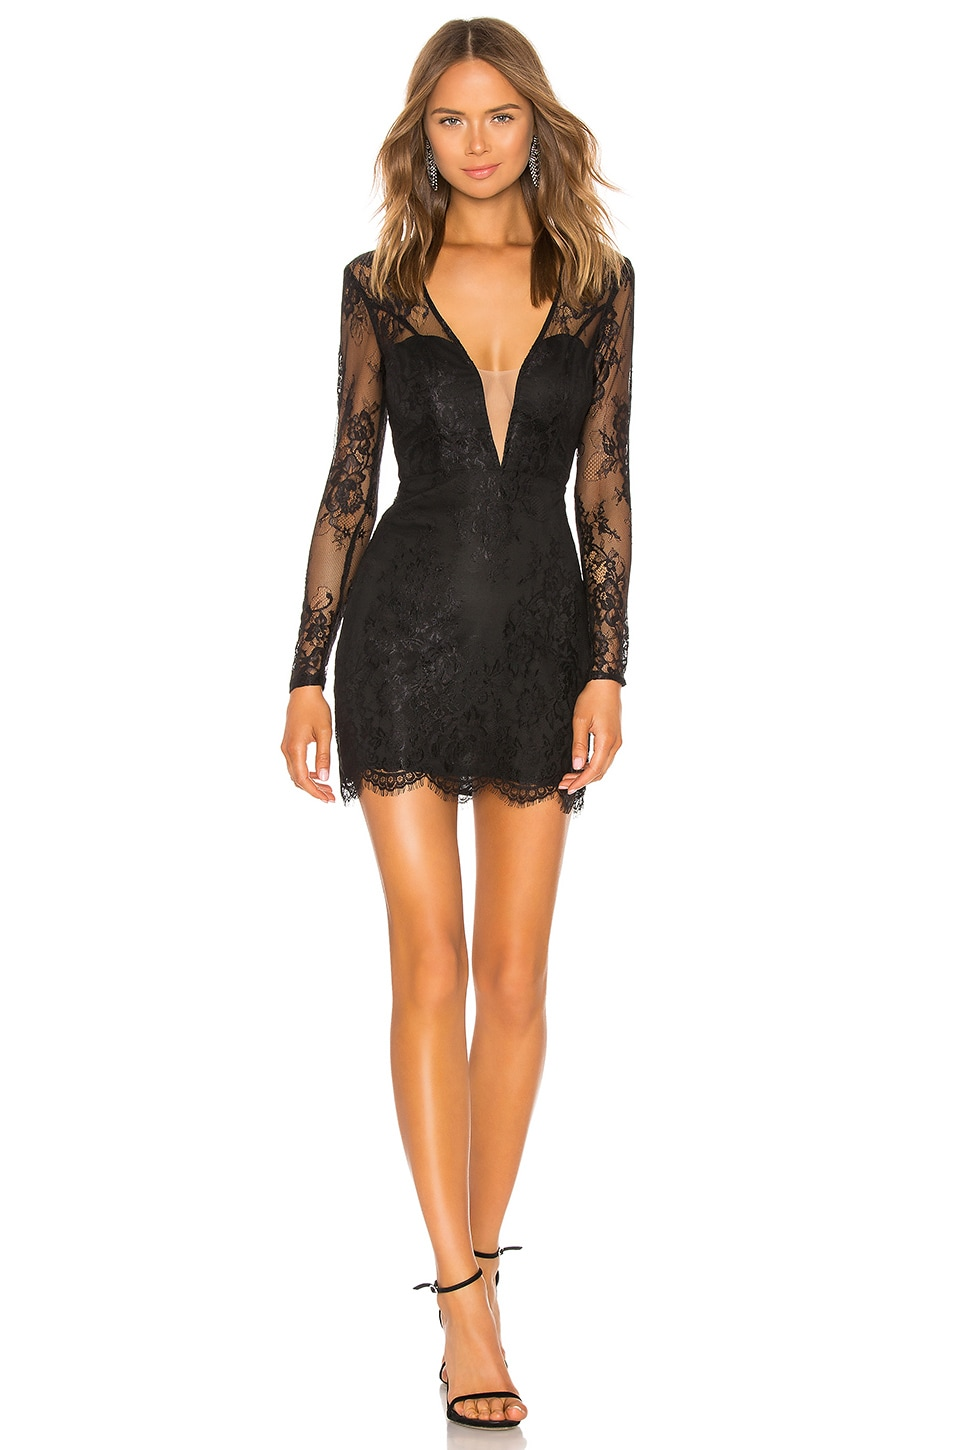 NBD Ceelo Mini Dress in Black